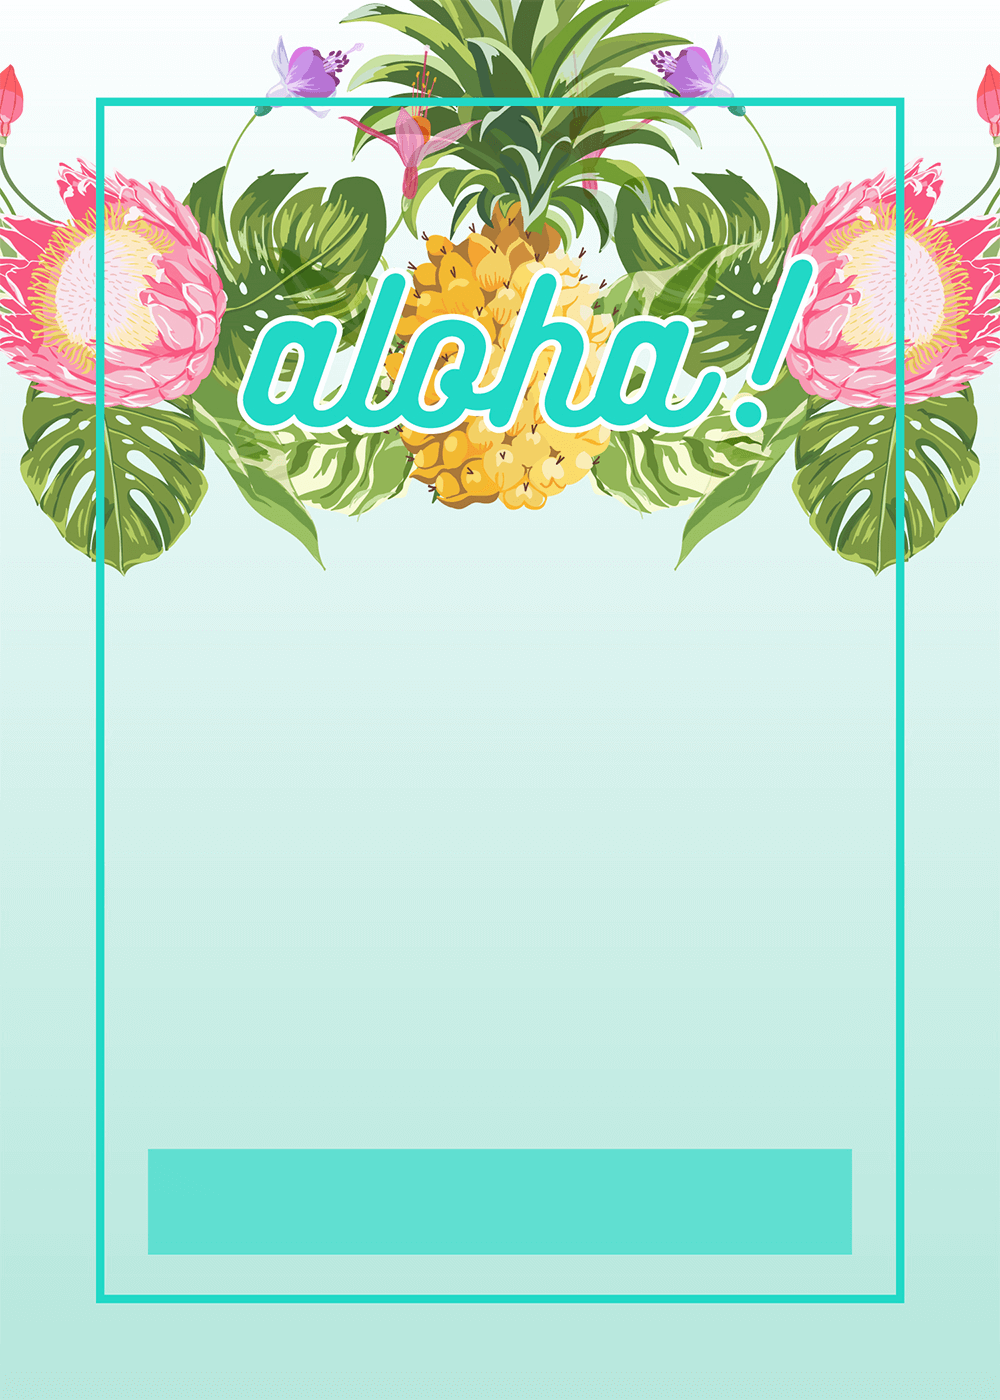 printable luau border use the border in microsoft word or other pineapple luau perimeter printable birthday invitation template greetings island